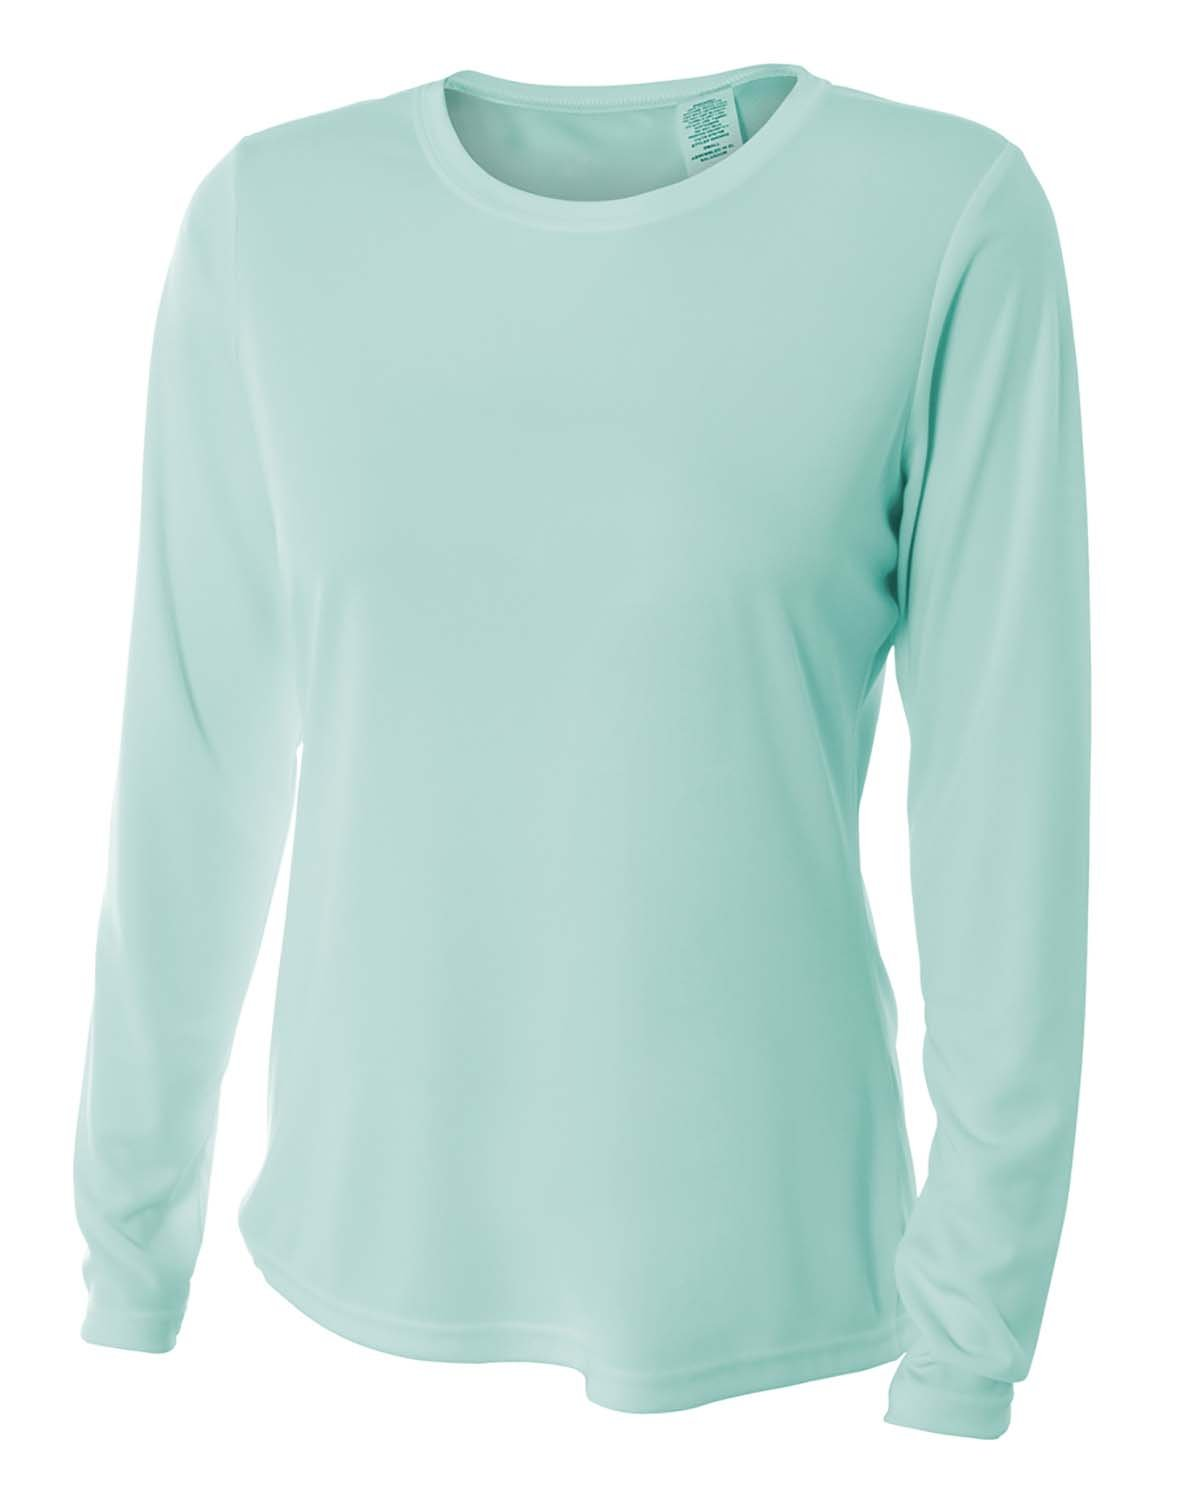 A4 Ladies' Long Sleeve Cooling Performance Crew Shirt PASTEL MINT